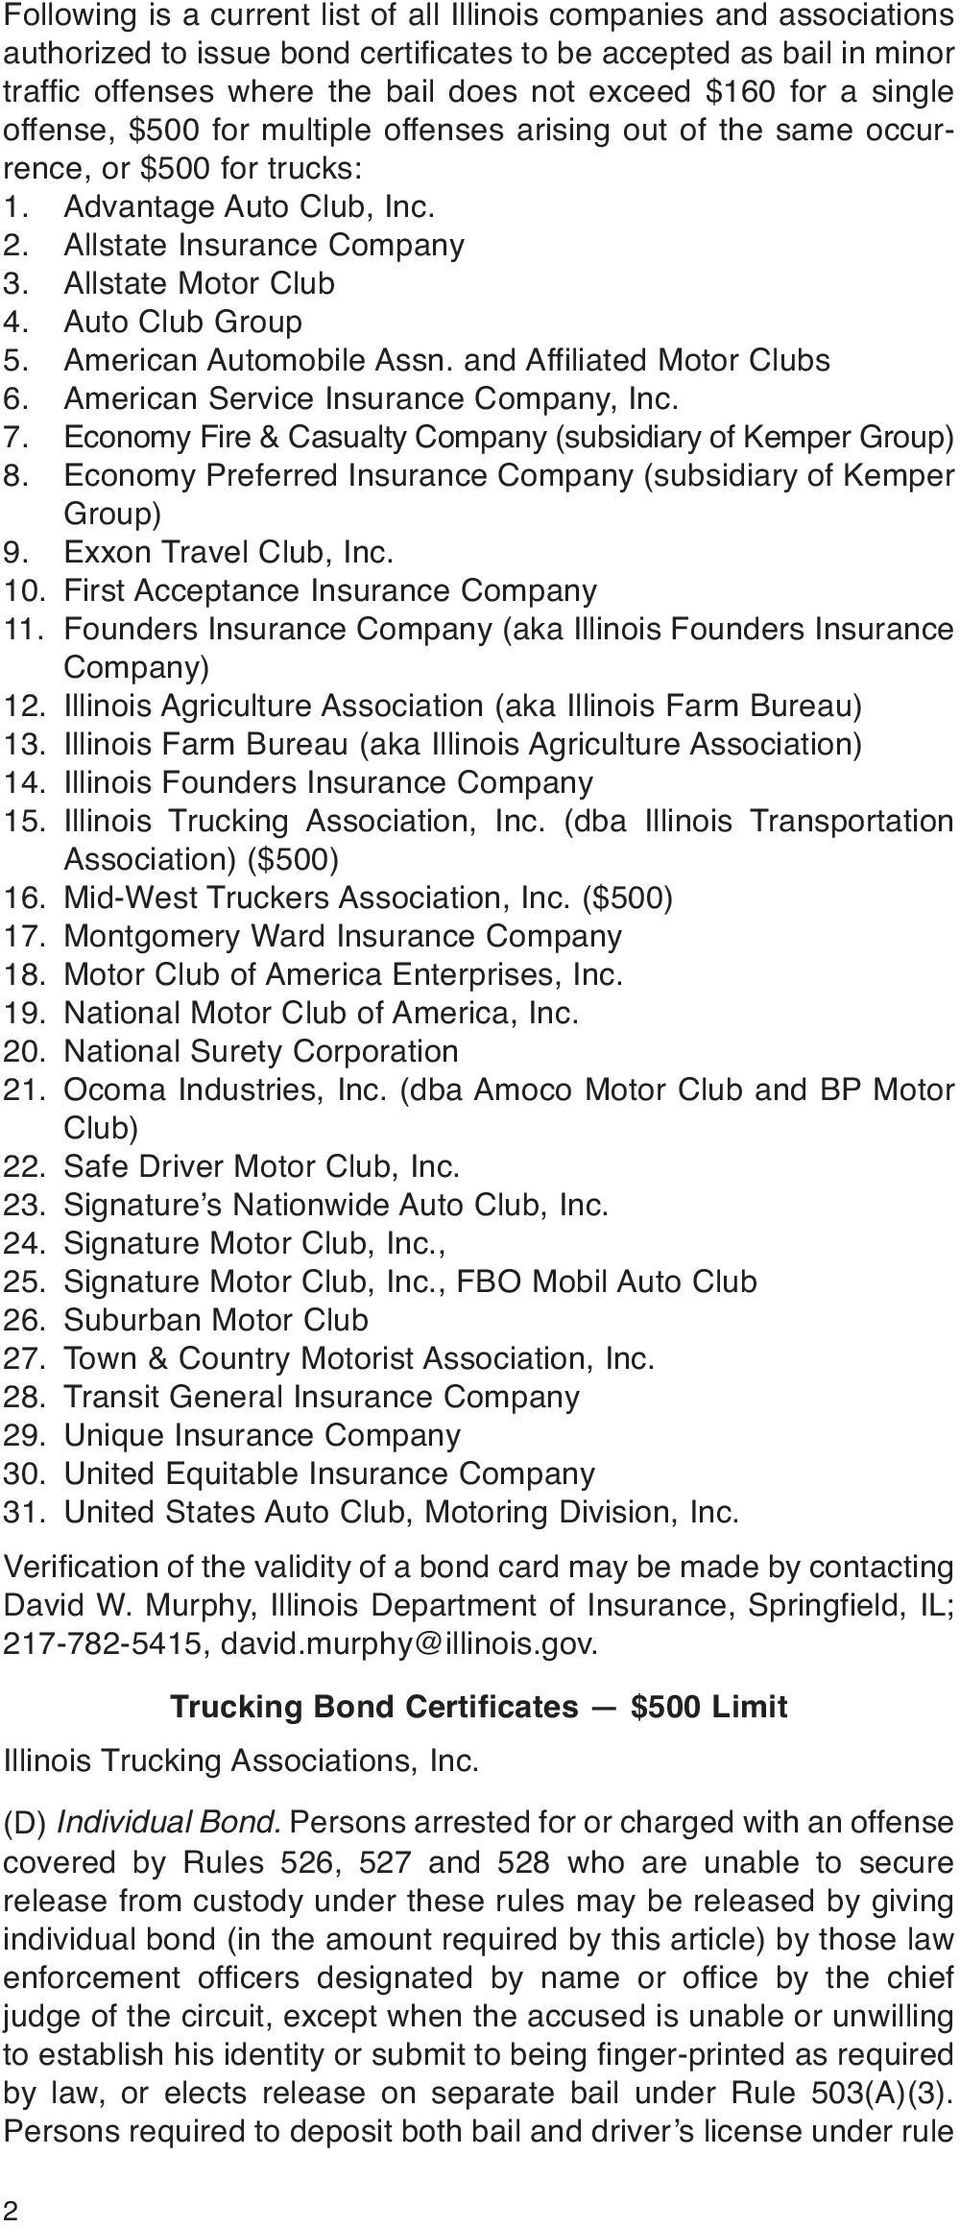 Auto Club Group 5. American Automobile Assn. and Affiliated Motor Clubs 6. American Service Insurance Company, Inc. 7. Economy Fire & Casualty Company (subsidiary of Kemper Group) 8.